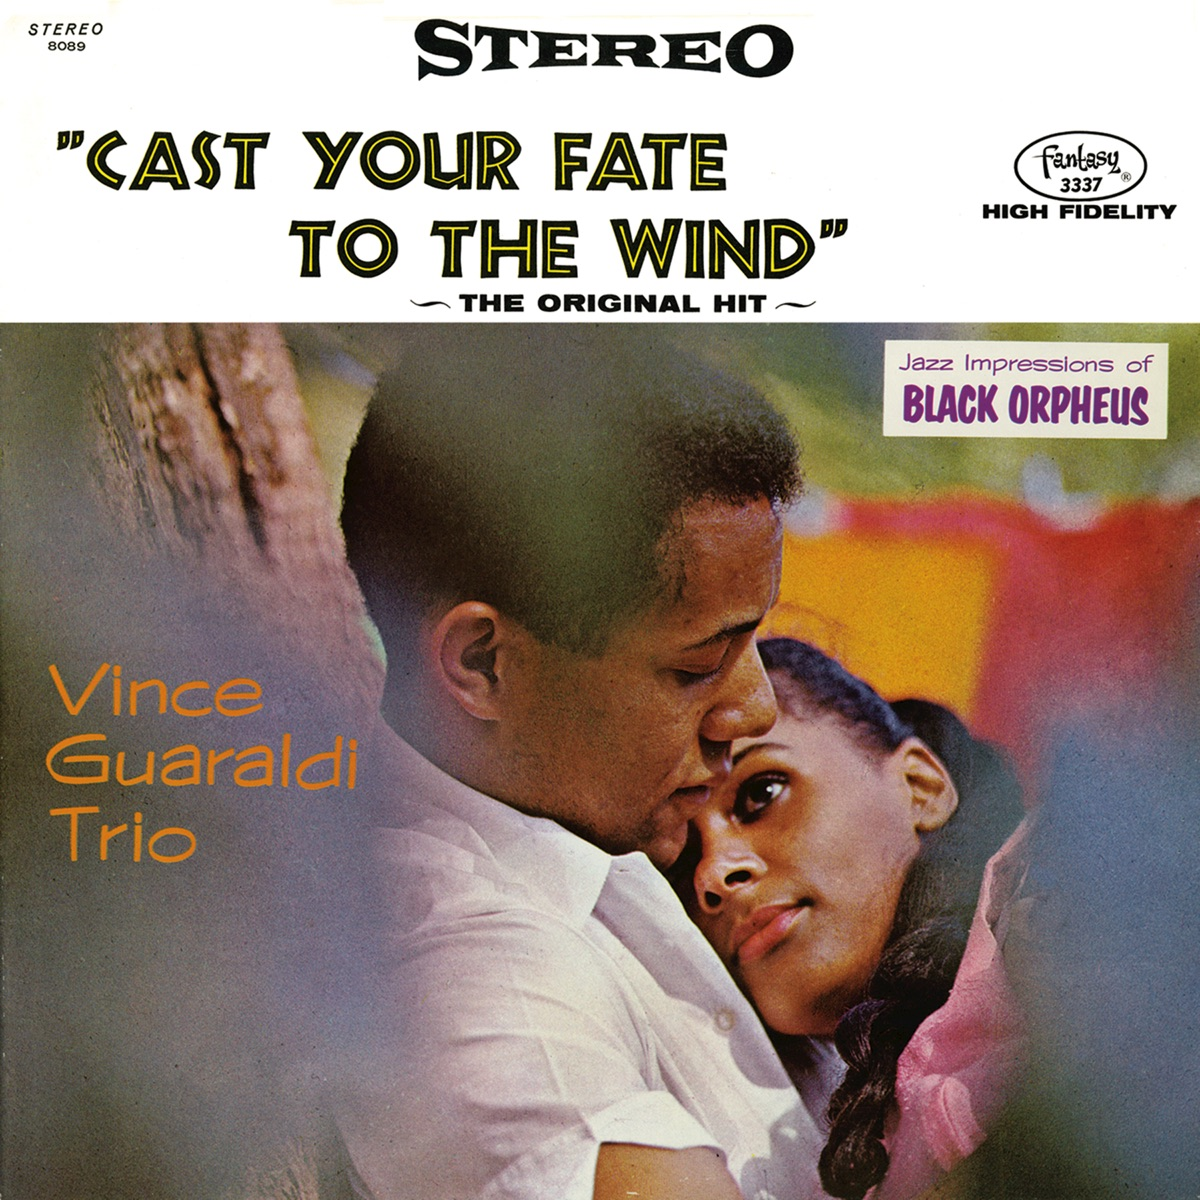 Jazz Impressions of Black Orpheus Limited Edition Vince Guaraldi Trio CD cover